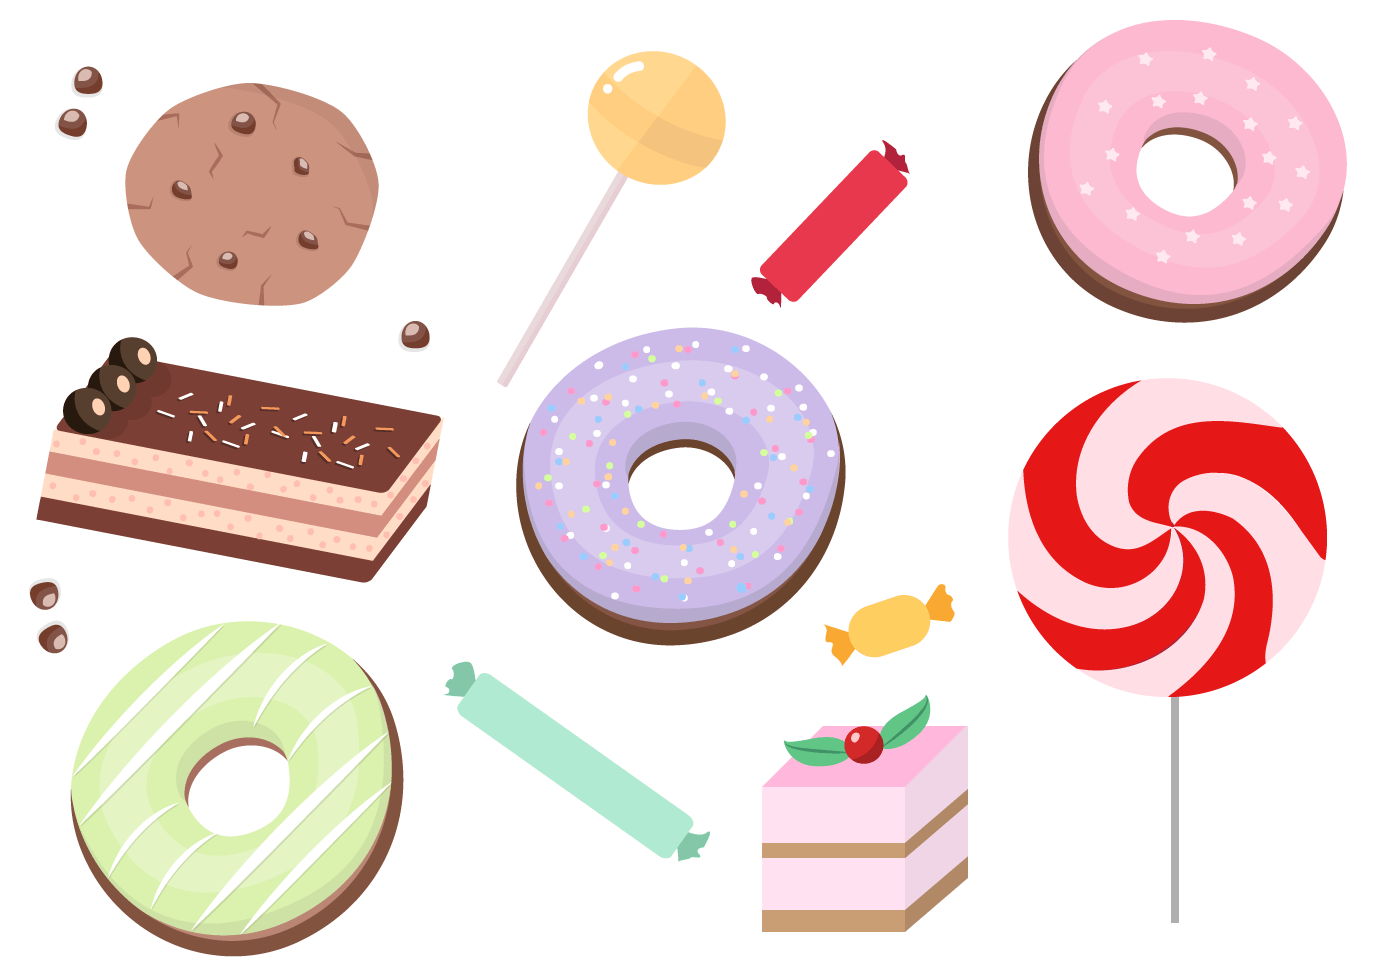 Cute Popsicle Wallpaper Free Sweets Vector Download Free Vector Art Stock